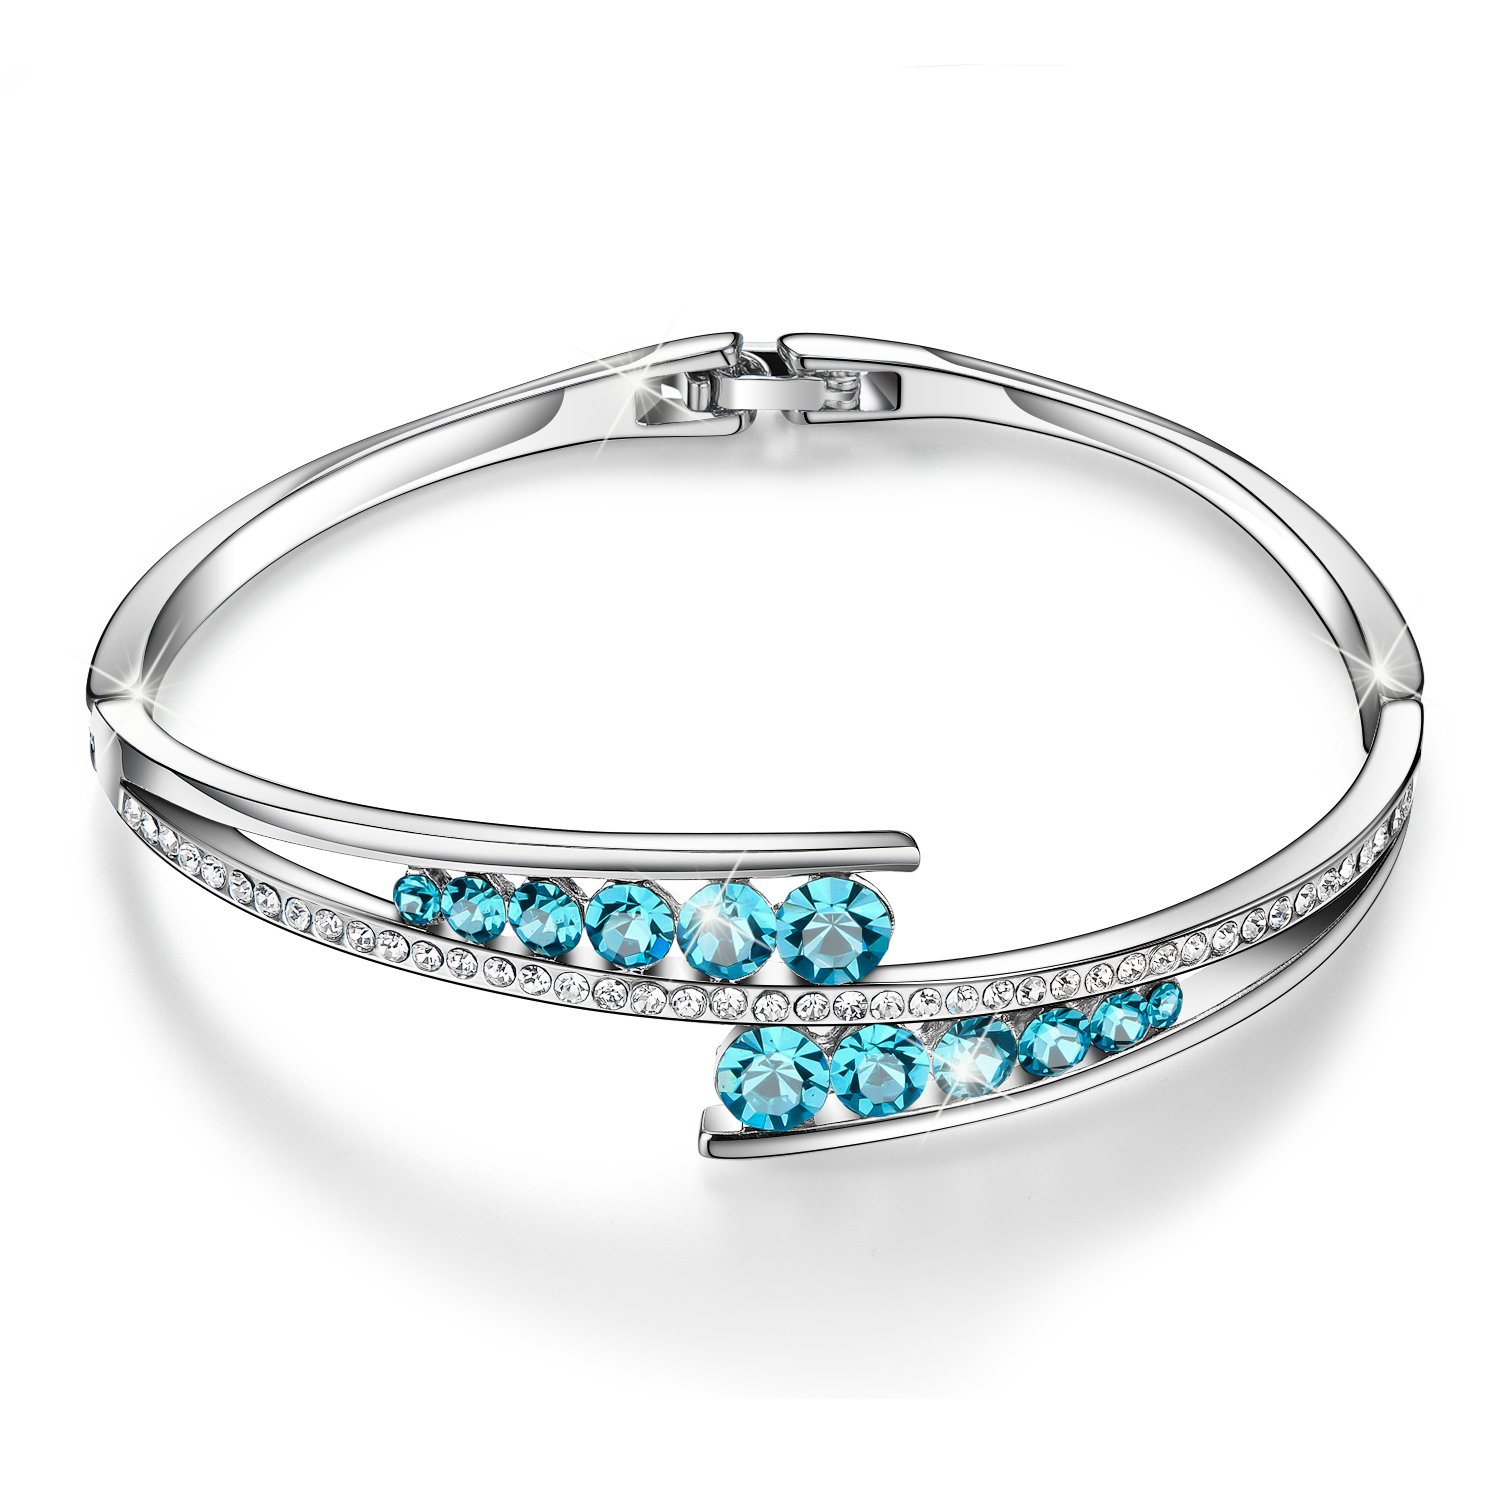 Mothers Charm Bracelet: Mother's Day Jewelry Is The Best Gift, But Why?